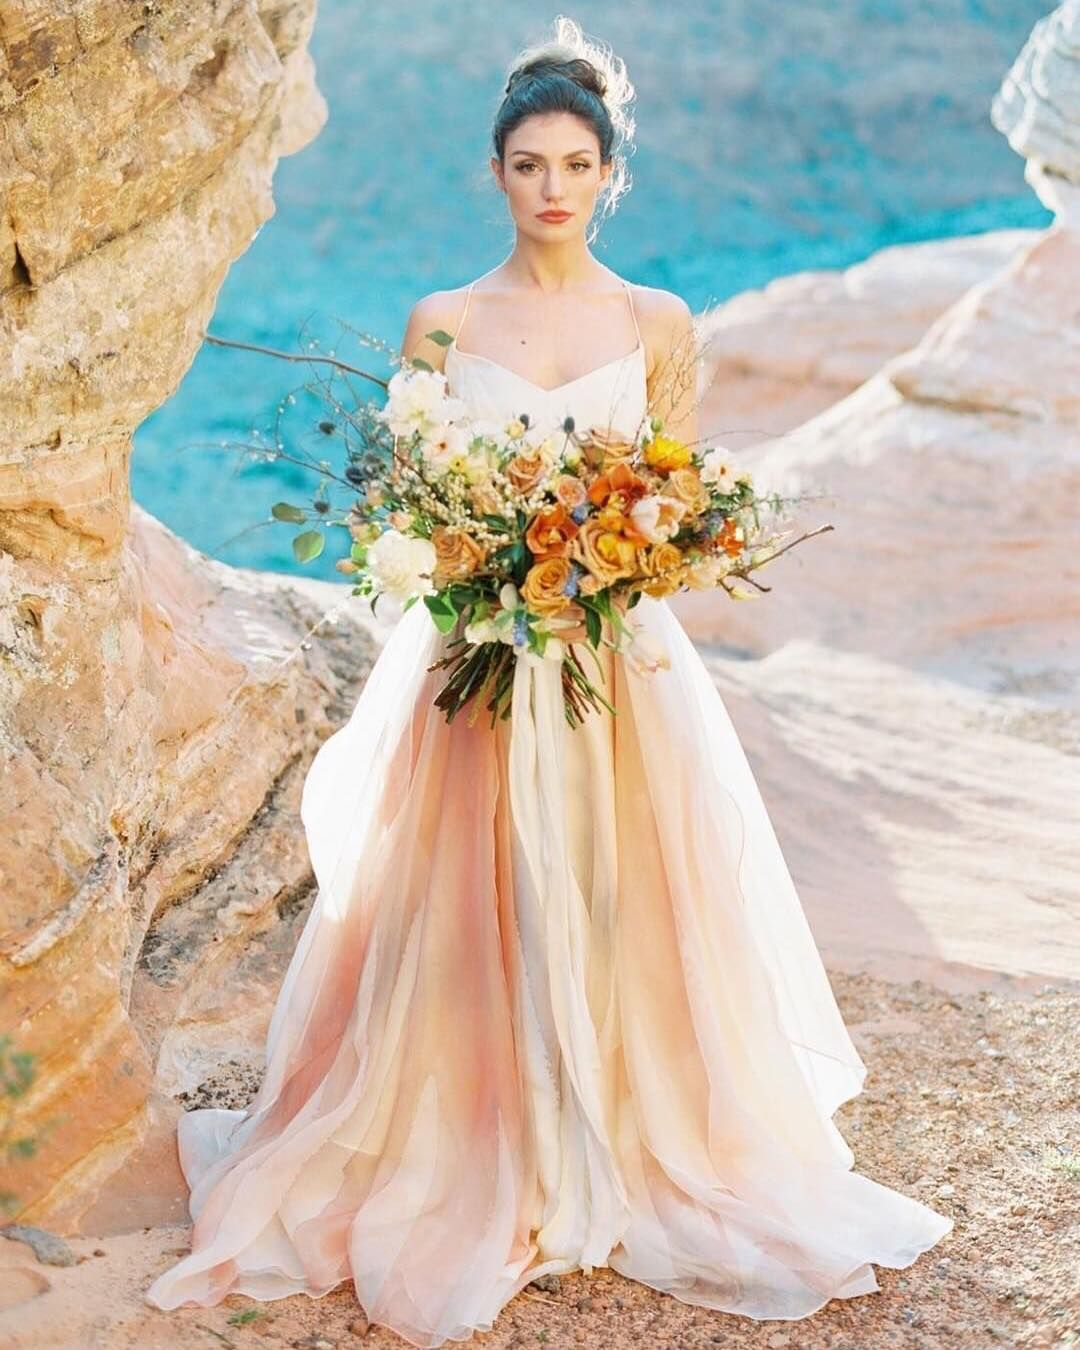 Gorgeous Wedding Dress Shot At The Beach With Earth Tones Plus A